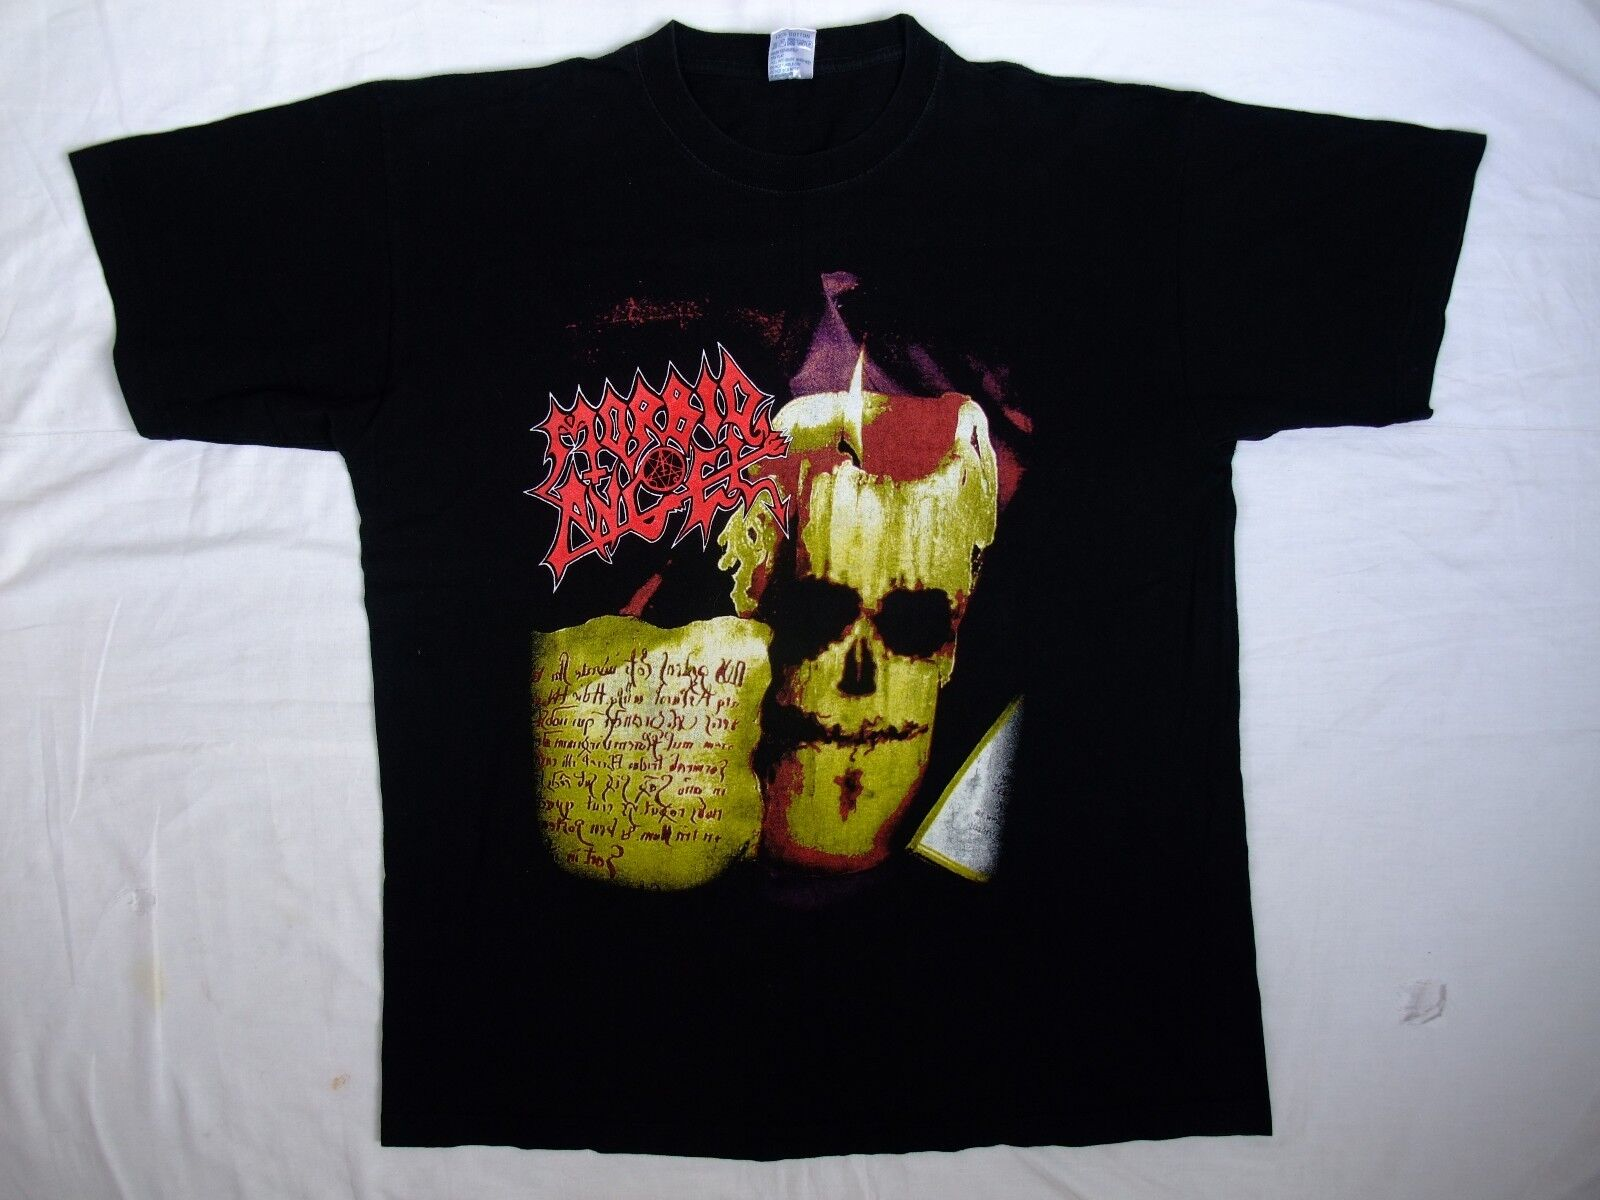 Vtg Morbid Angel t-shirt tour 2005 Masters of Chaos Death Napalm Death Deicide